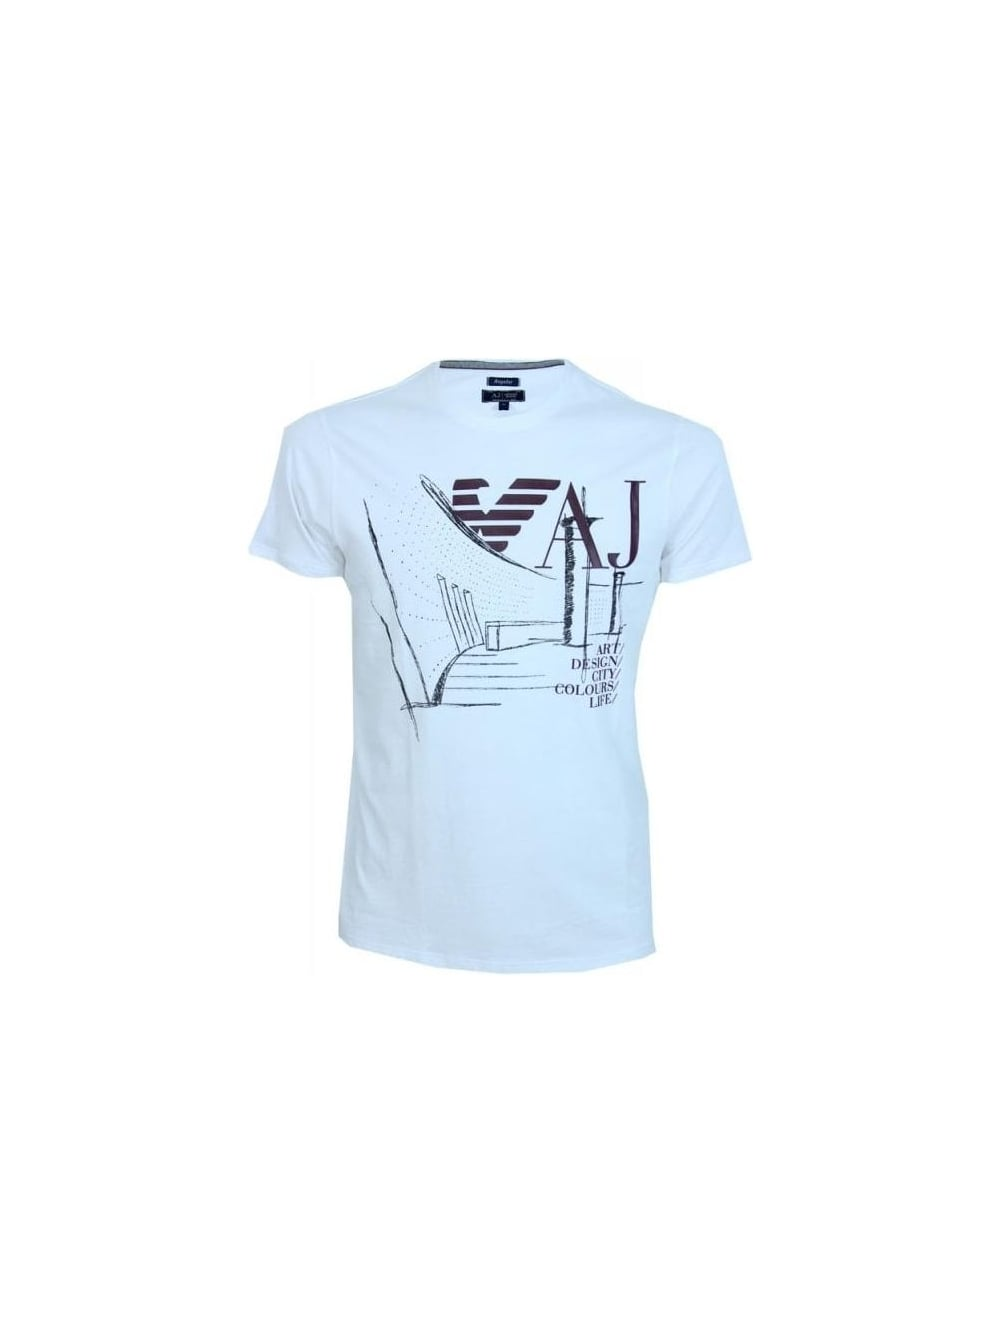 Armani jeans graphic design crew t shirt in white for Graphic design t shirts uk